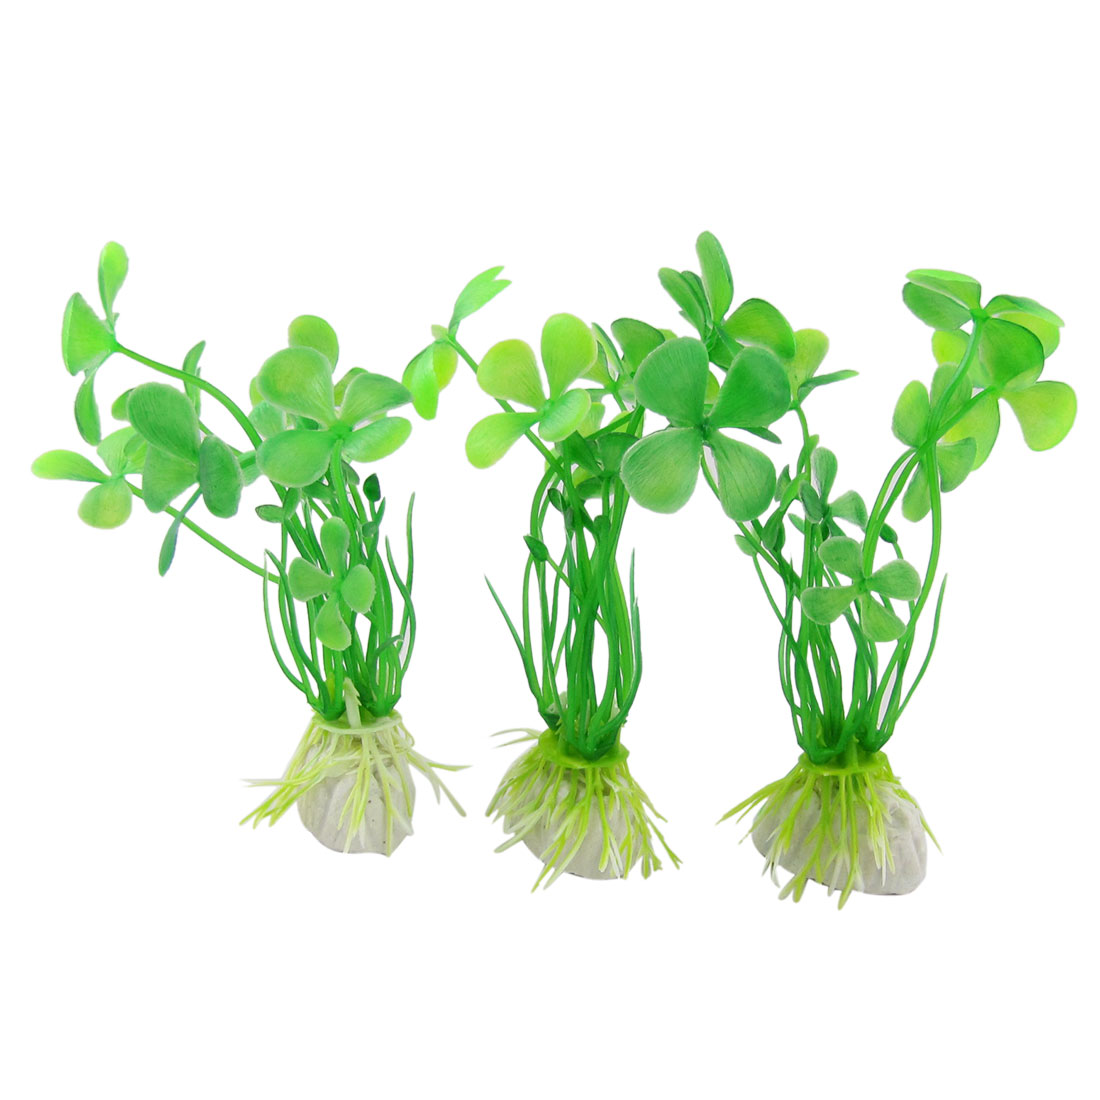 3Pcs Green Plastic Clover Plant Grass Fish Tank Decoration